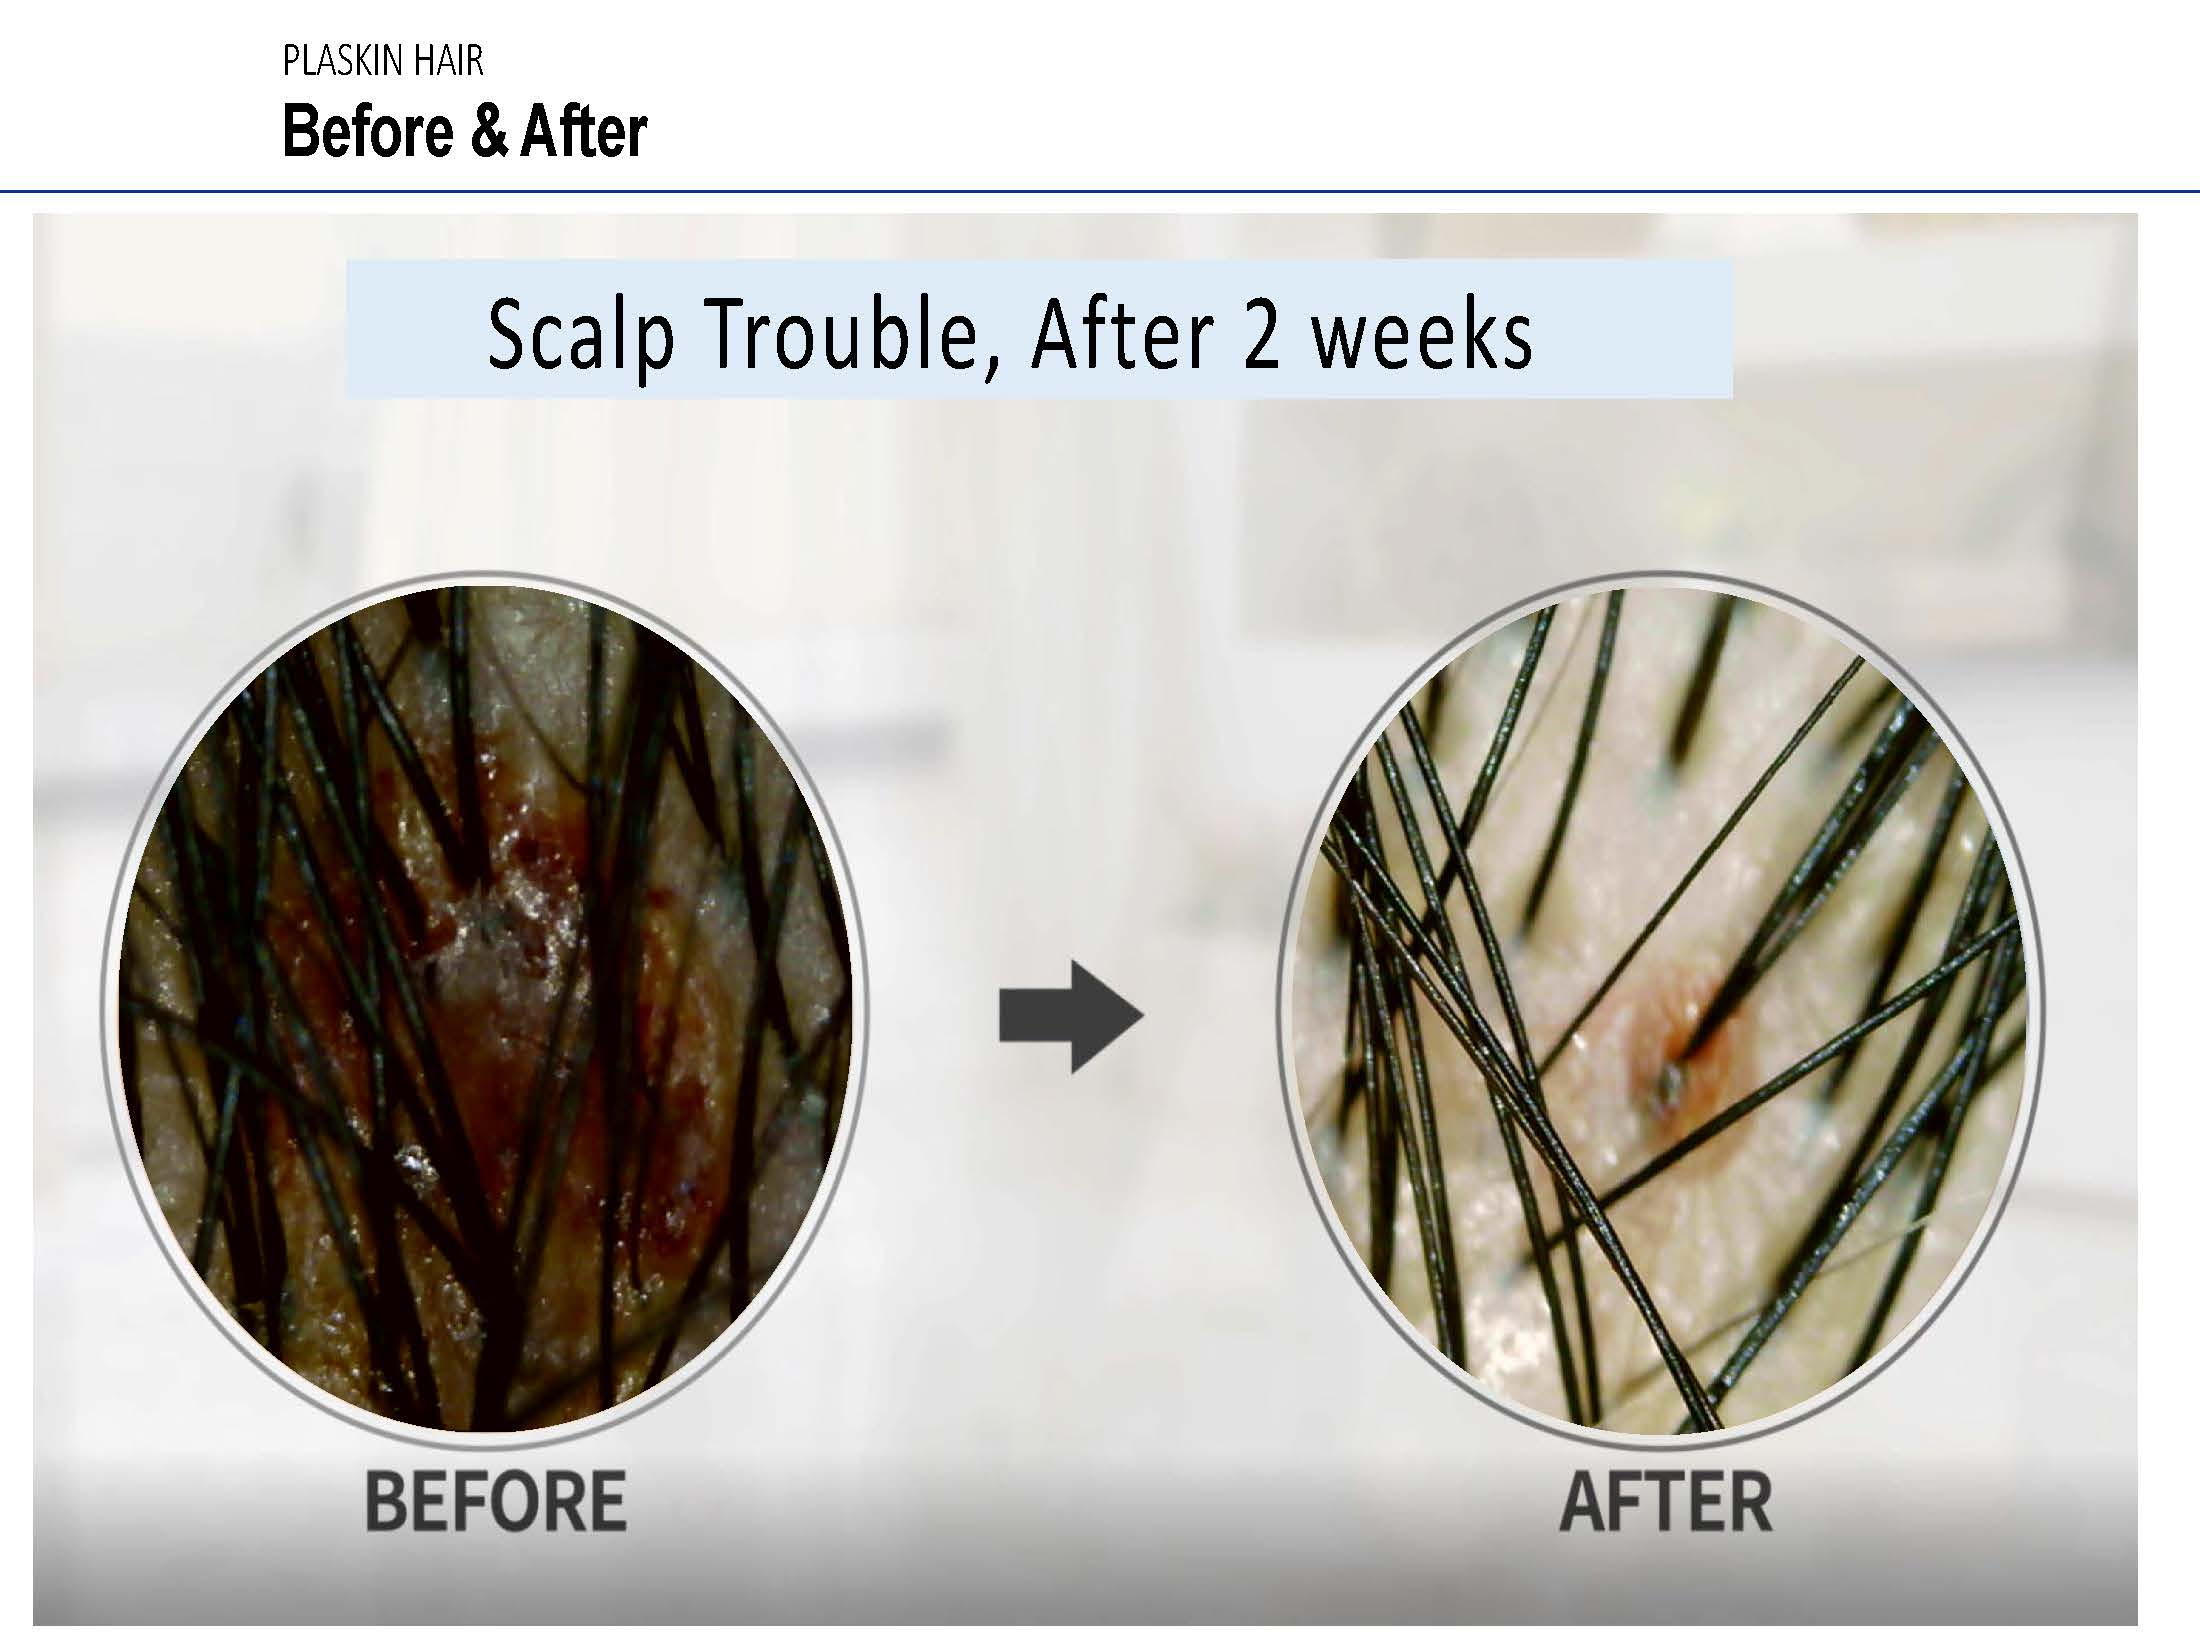 scalp trouble examples__Page_15.jpg